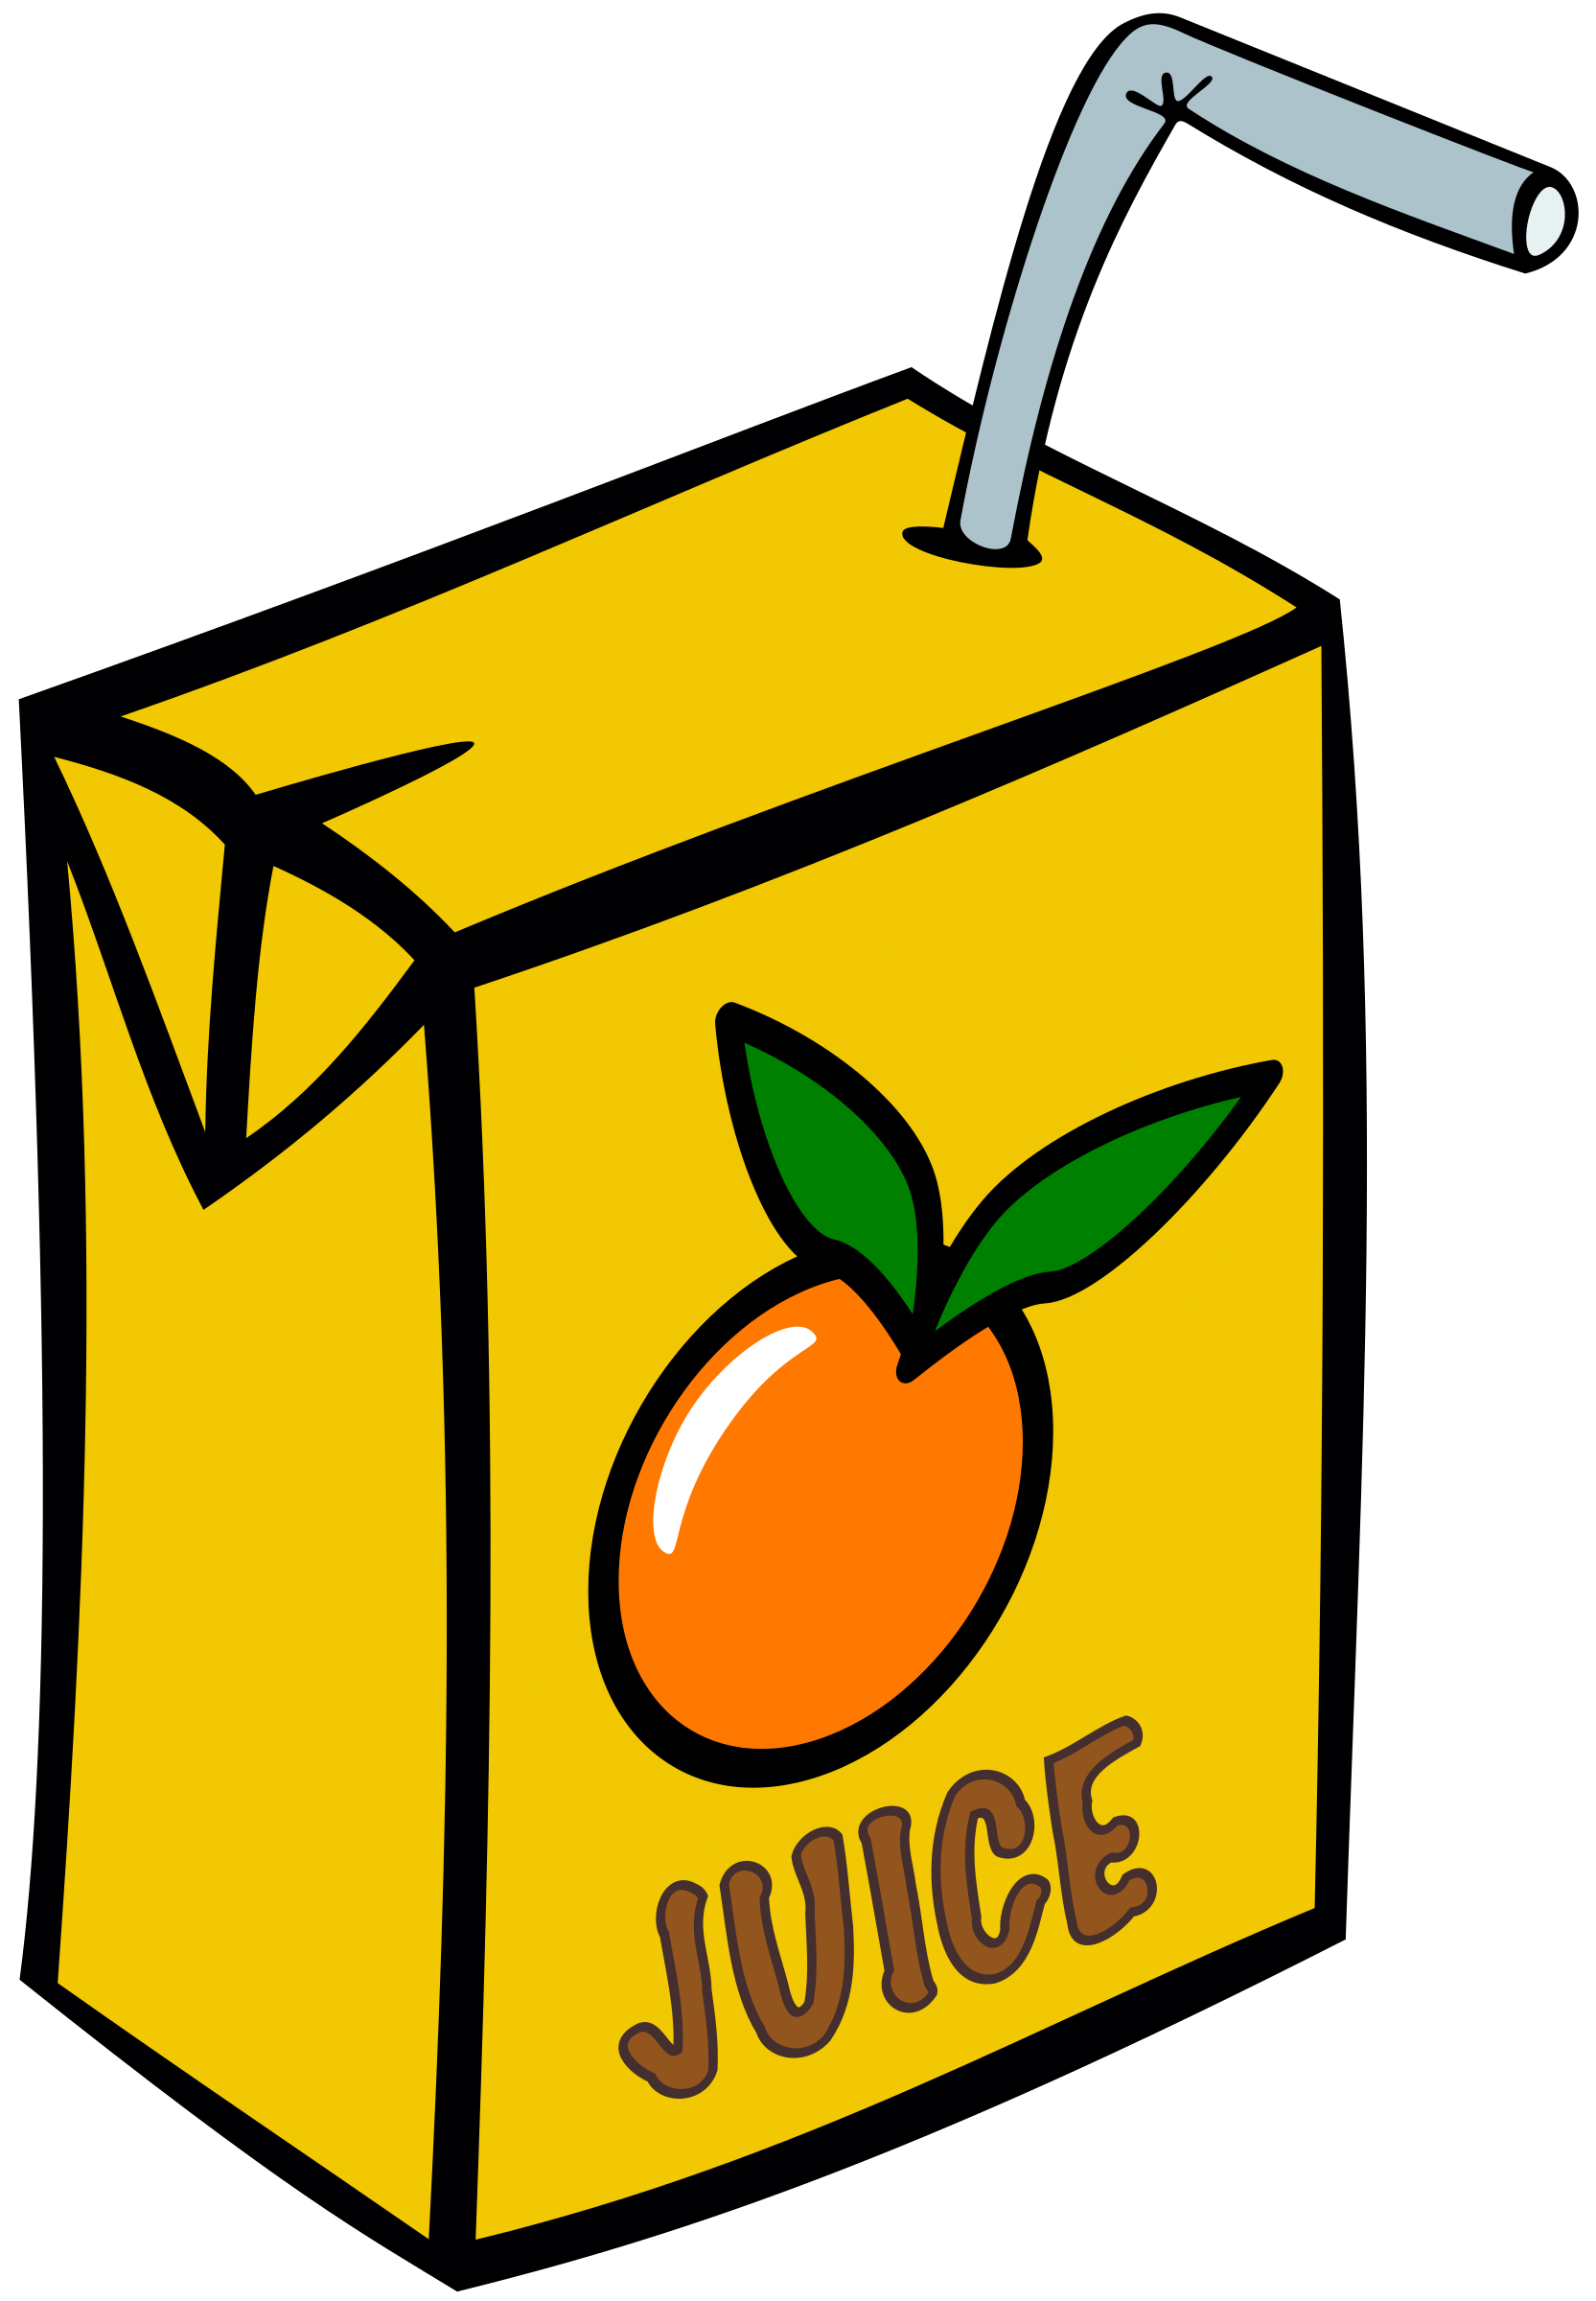 Clipart box juice, Clipart box juice Transparent FREE for ...